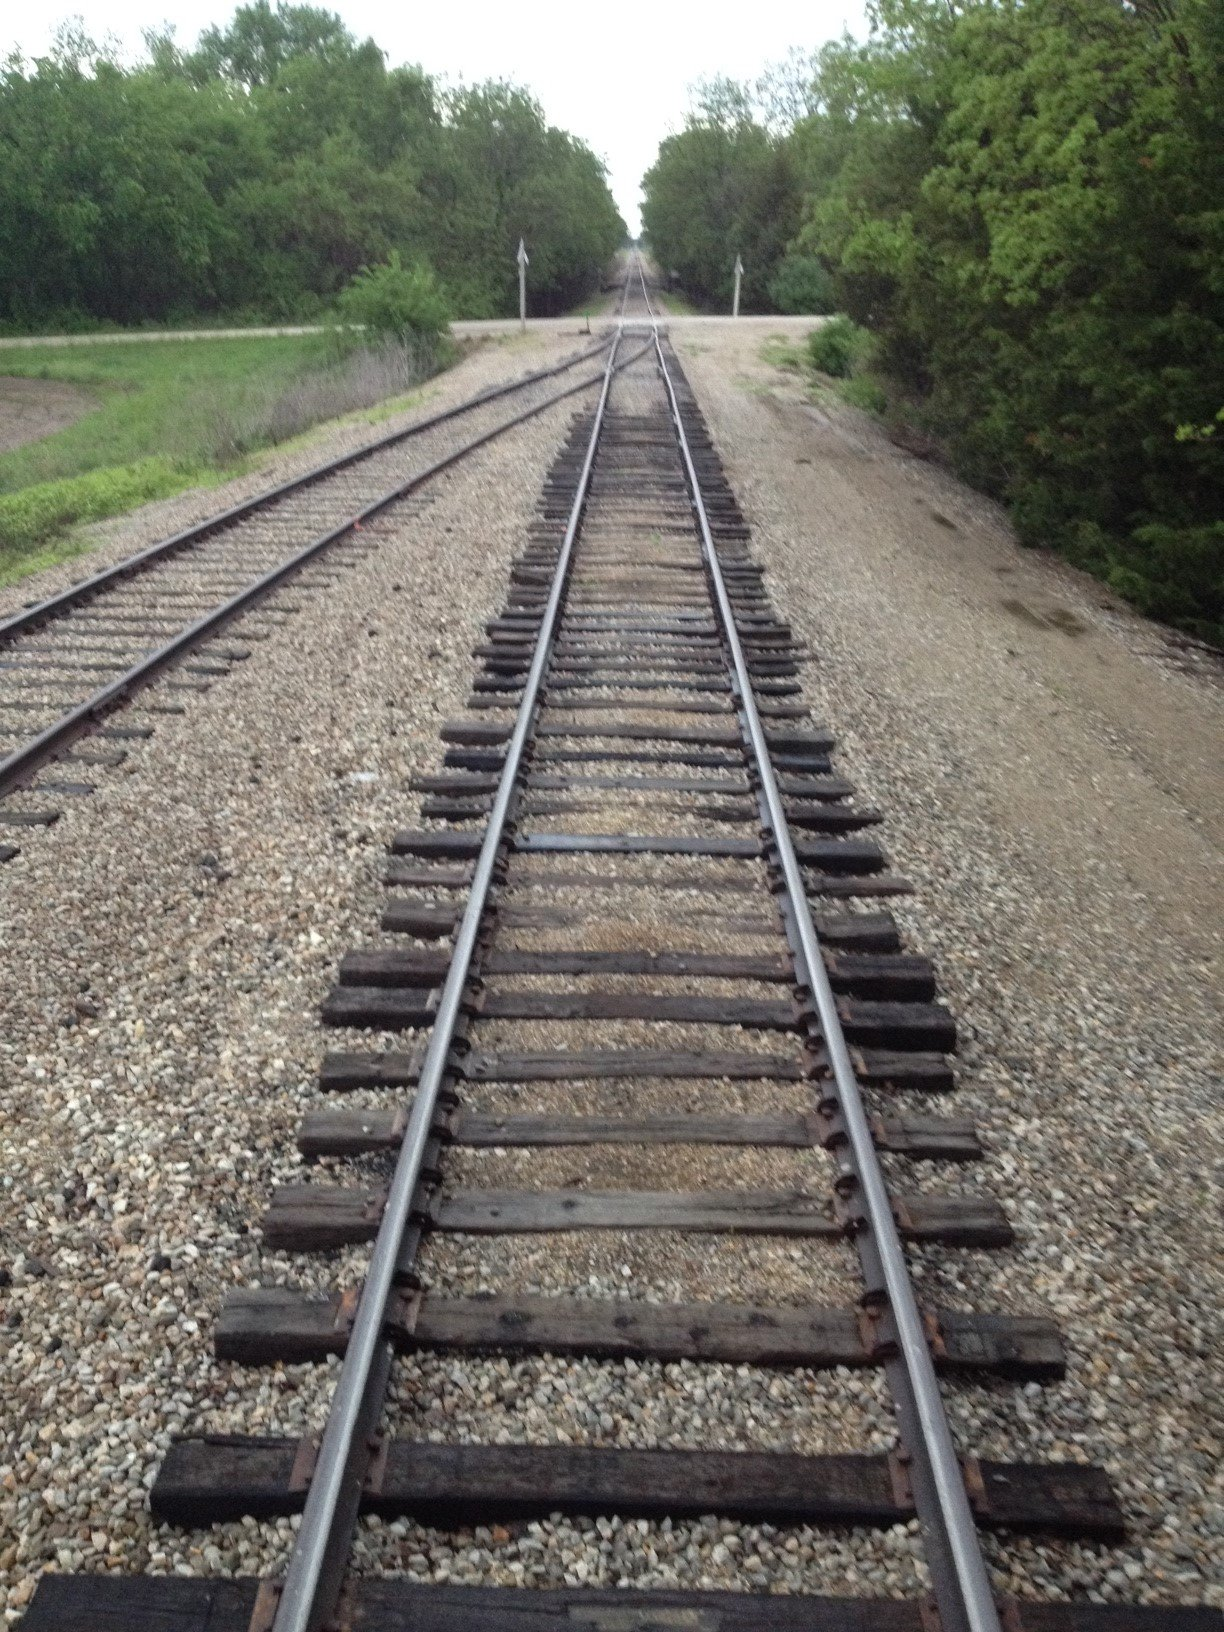 Typical railroad tracks in Kansas; these are located near Baldwin City. (Photo by J. Schafer)